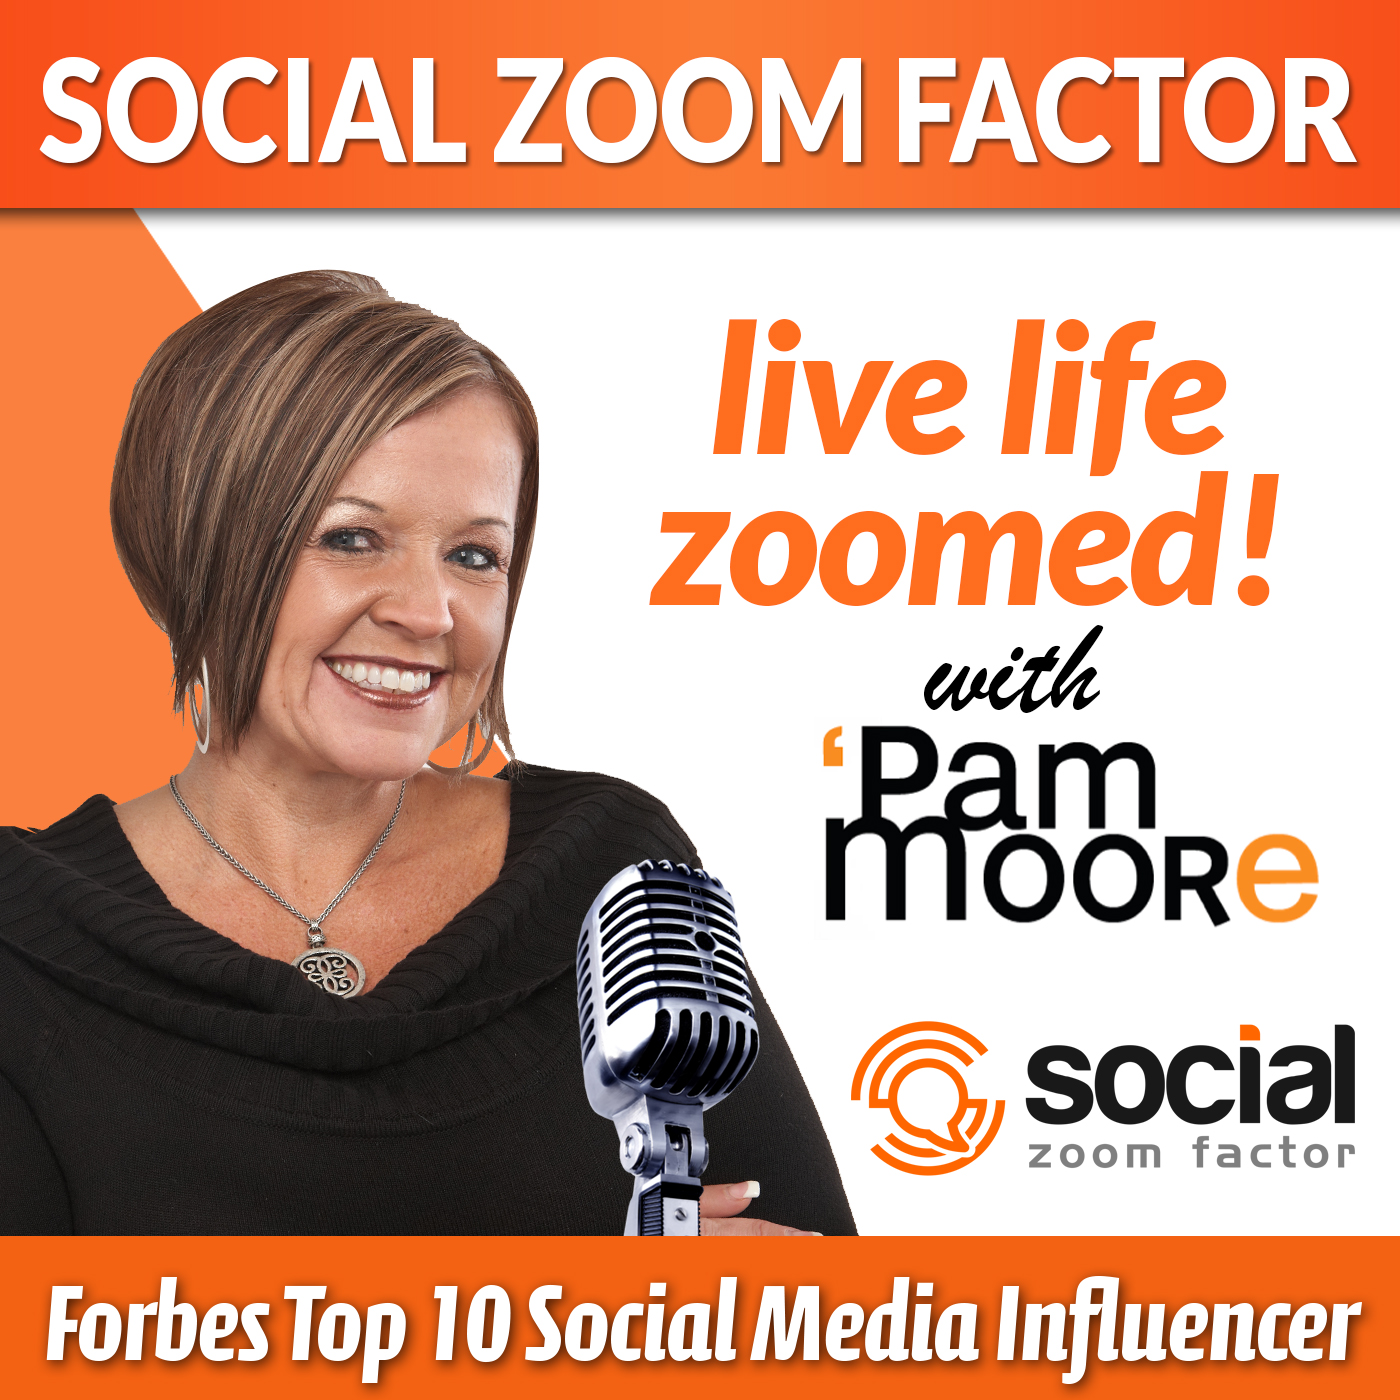 002: Stomp Random Acts of Marketing and Social Media